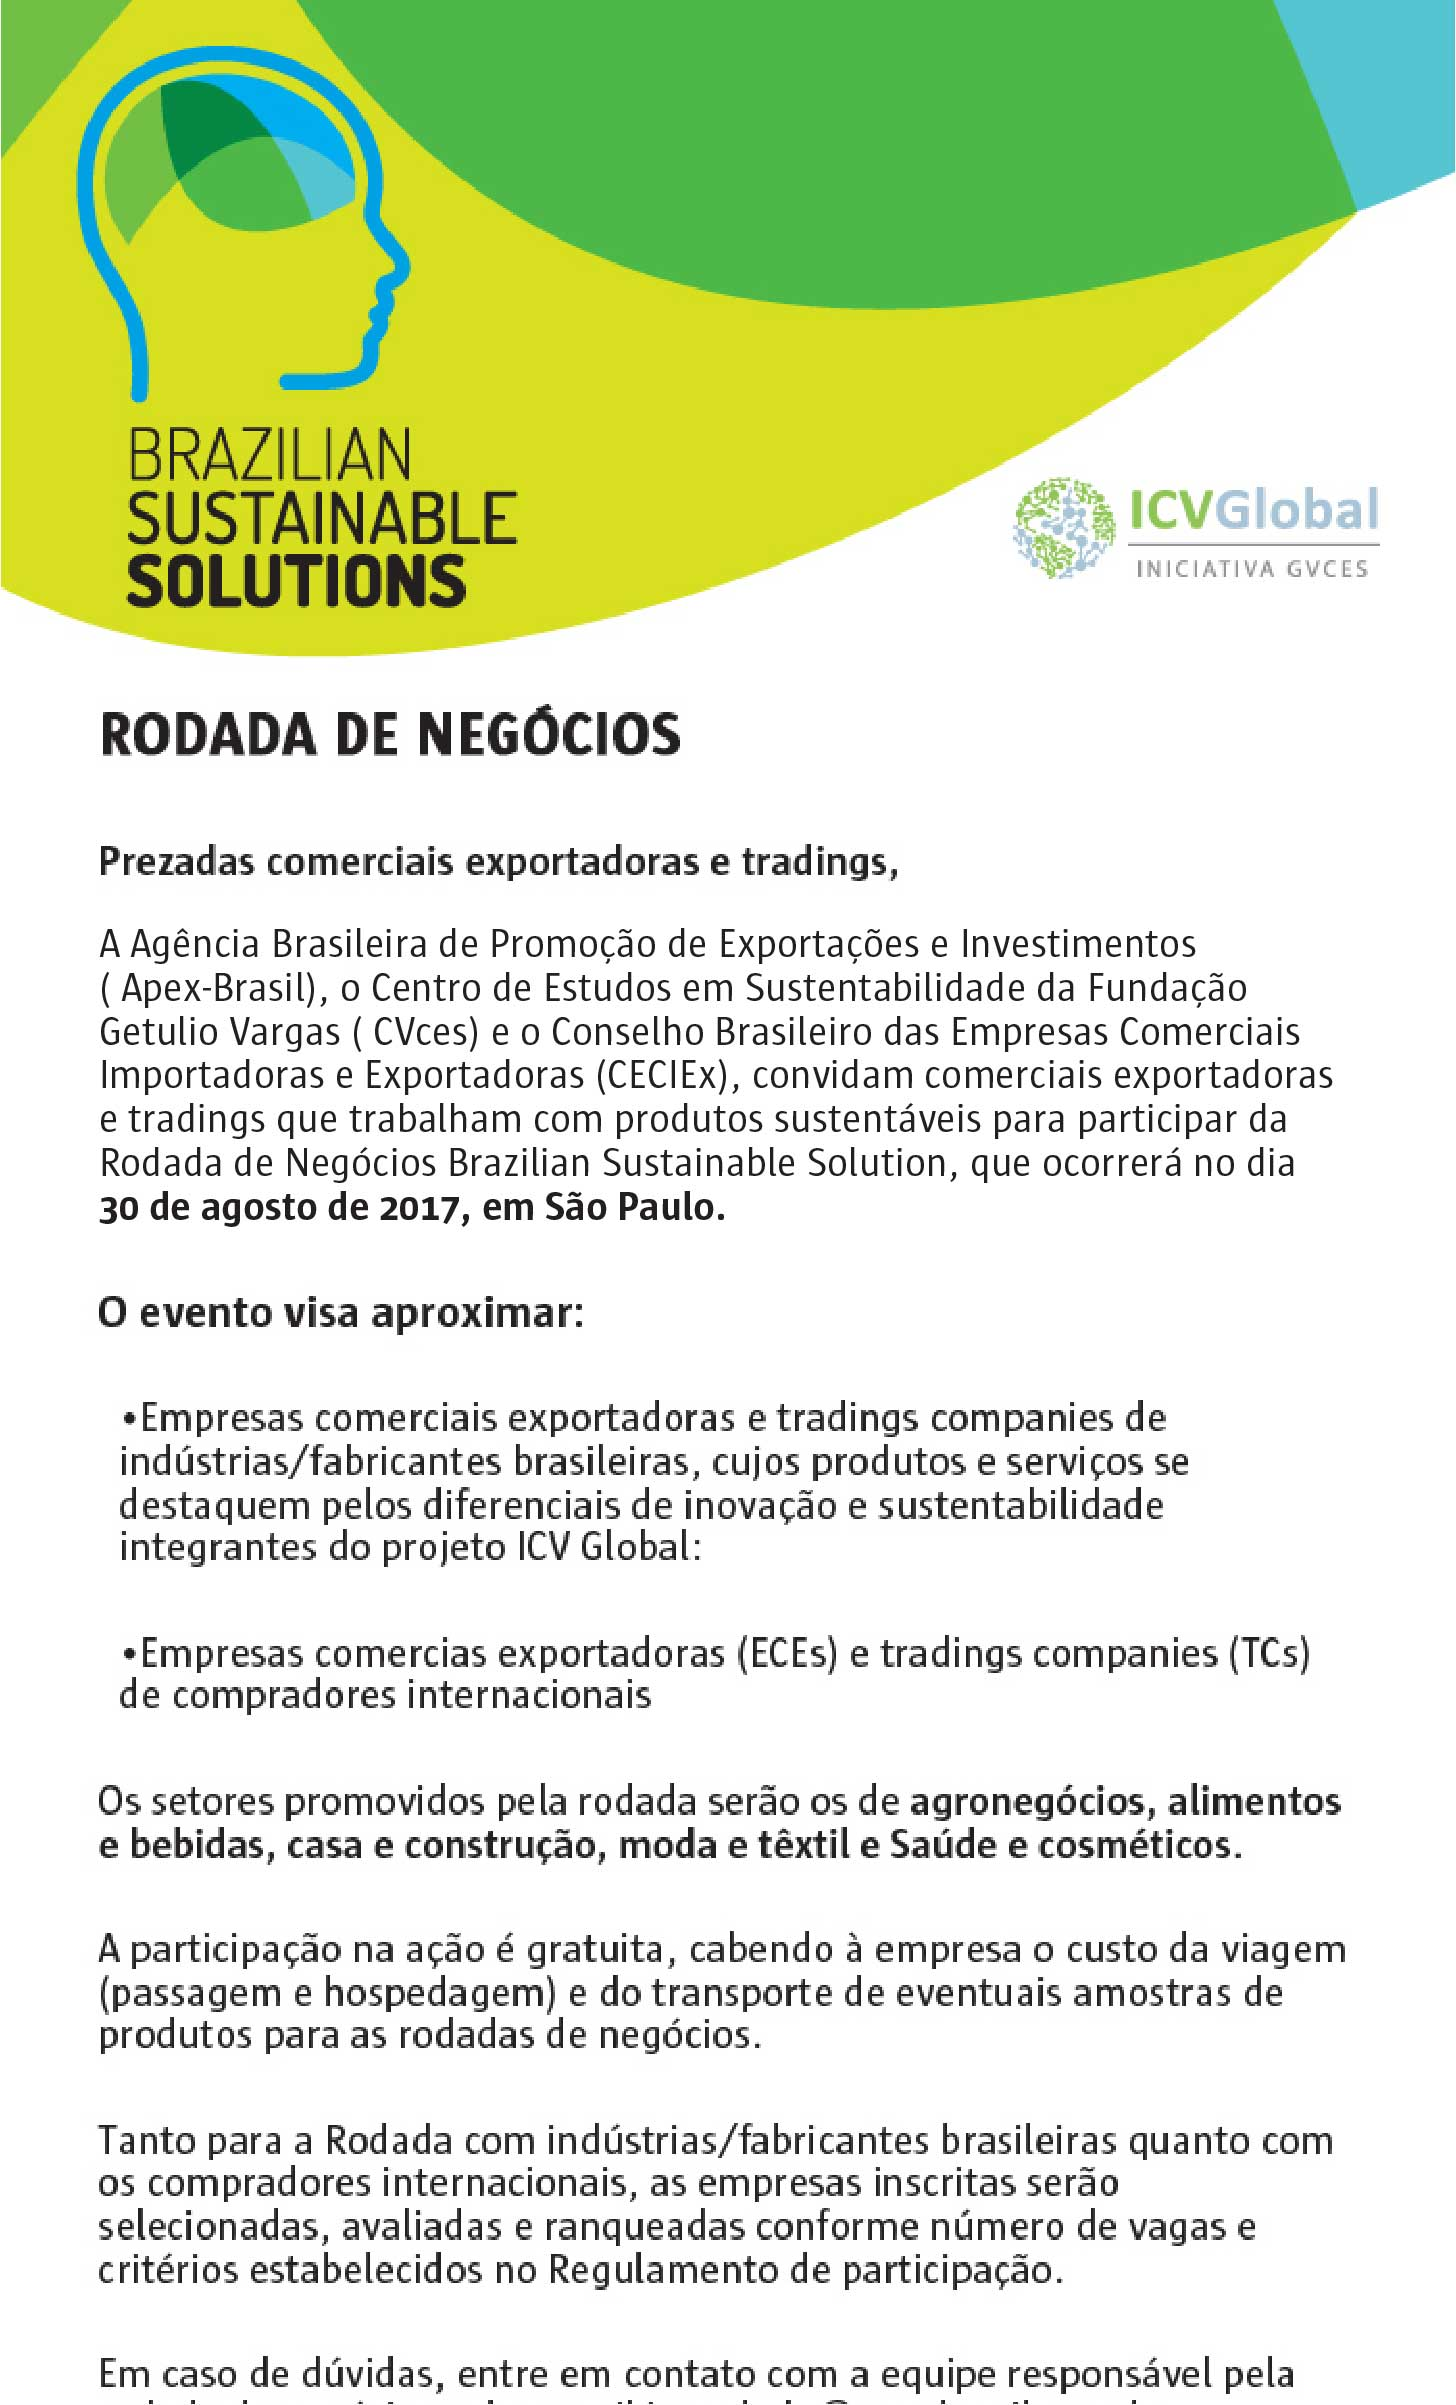 http://www.apexbrasil.com.br/emails/Brazilian-Sustanable-Solutions/2017/04/index_r1_c1.jpg